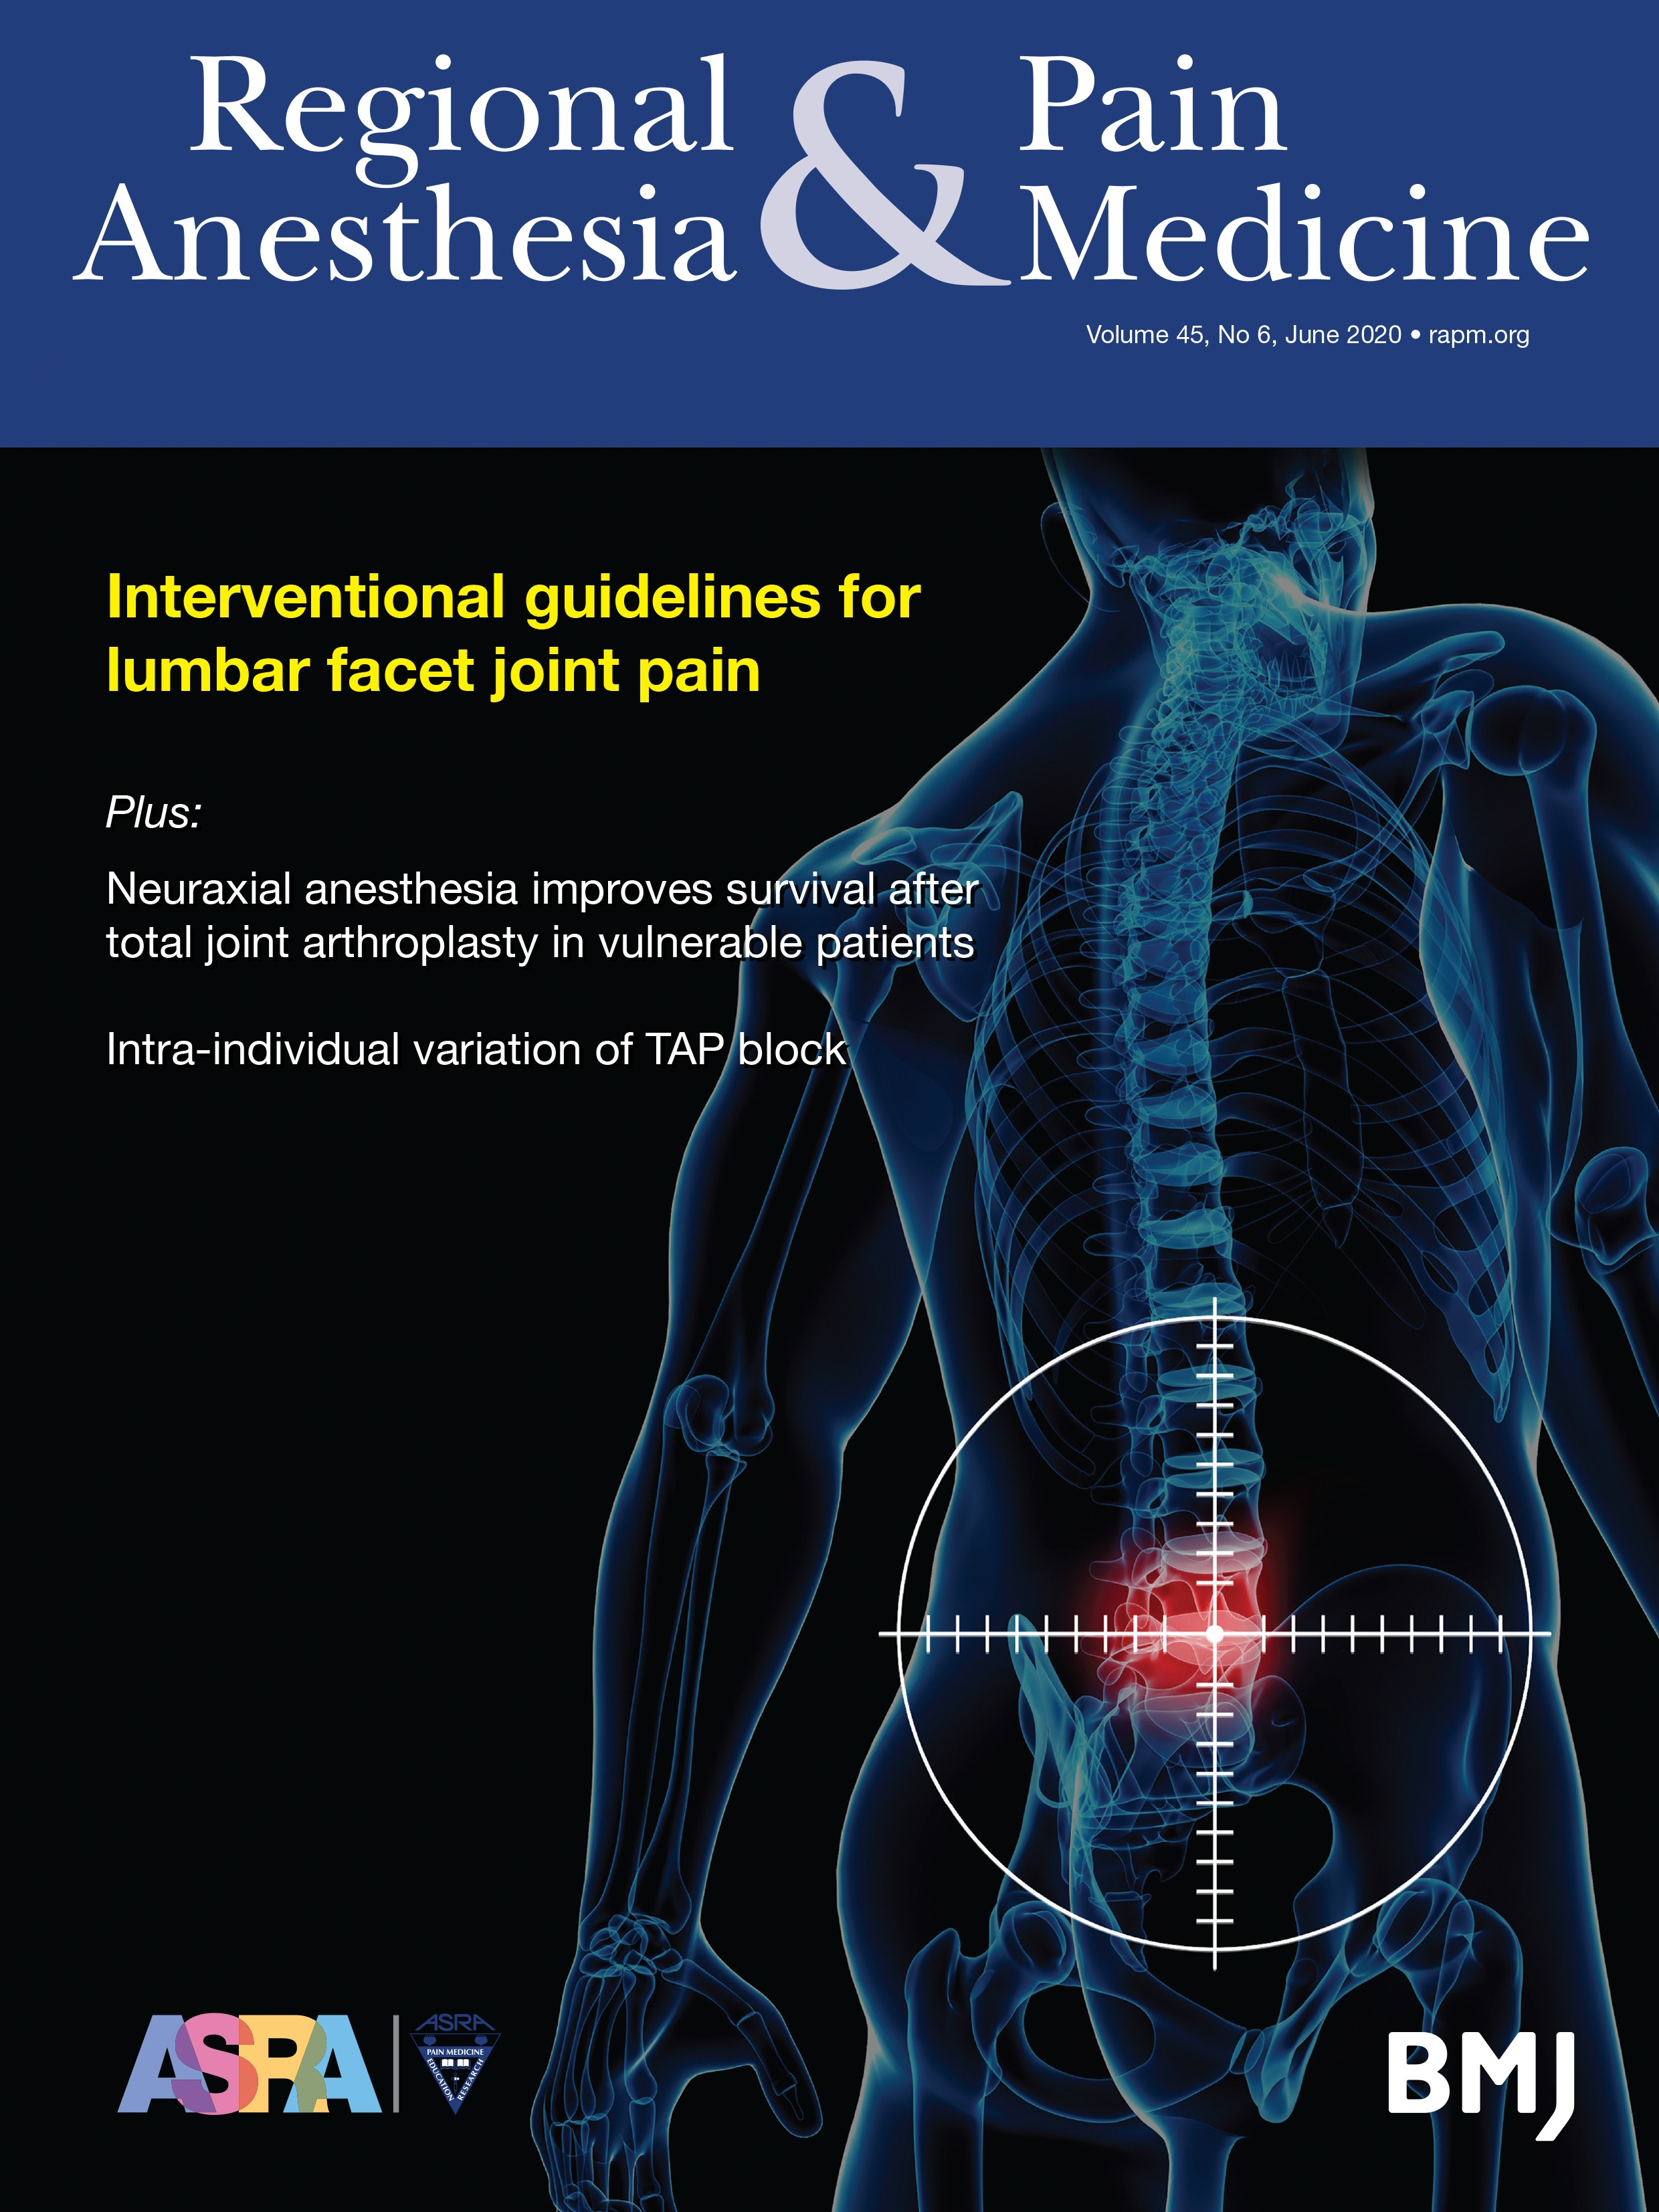 Consensus Practice Guidelines On Interventions For Lumbar Facet Joint Pain  From A Multispecialty, International Working Group | Regional Anesthesia &  Pain Medicine